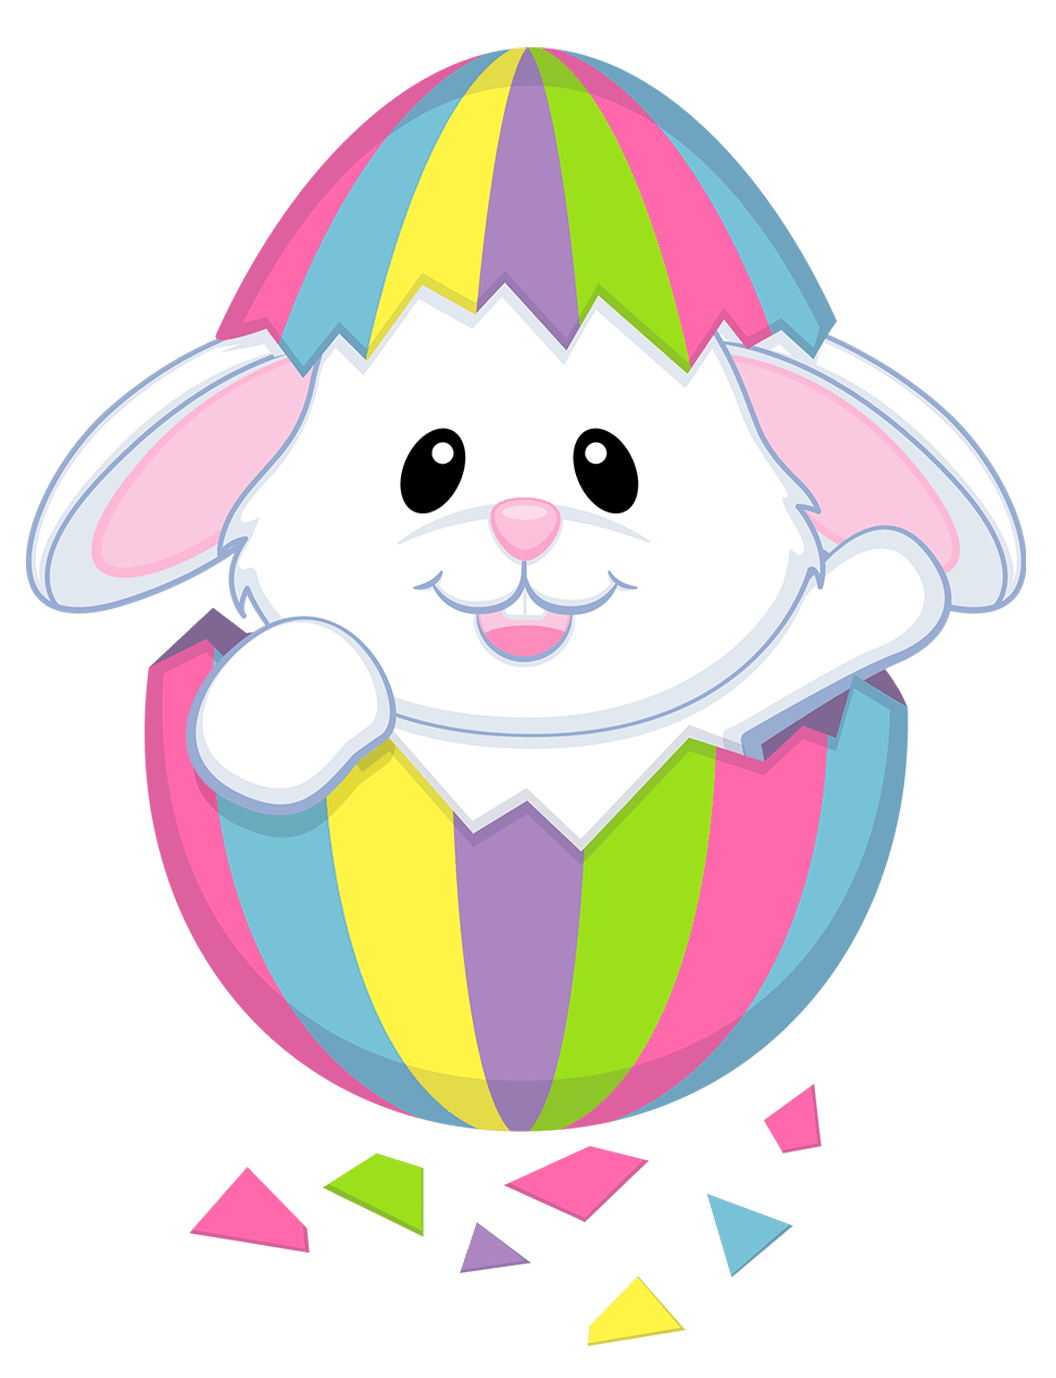 Easter cross free clipart. Top images of eggs